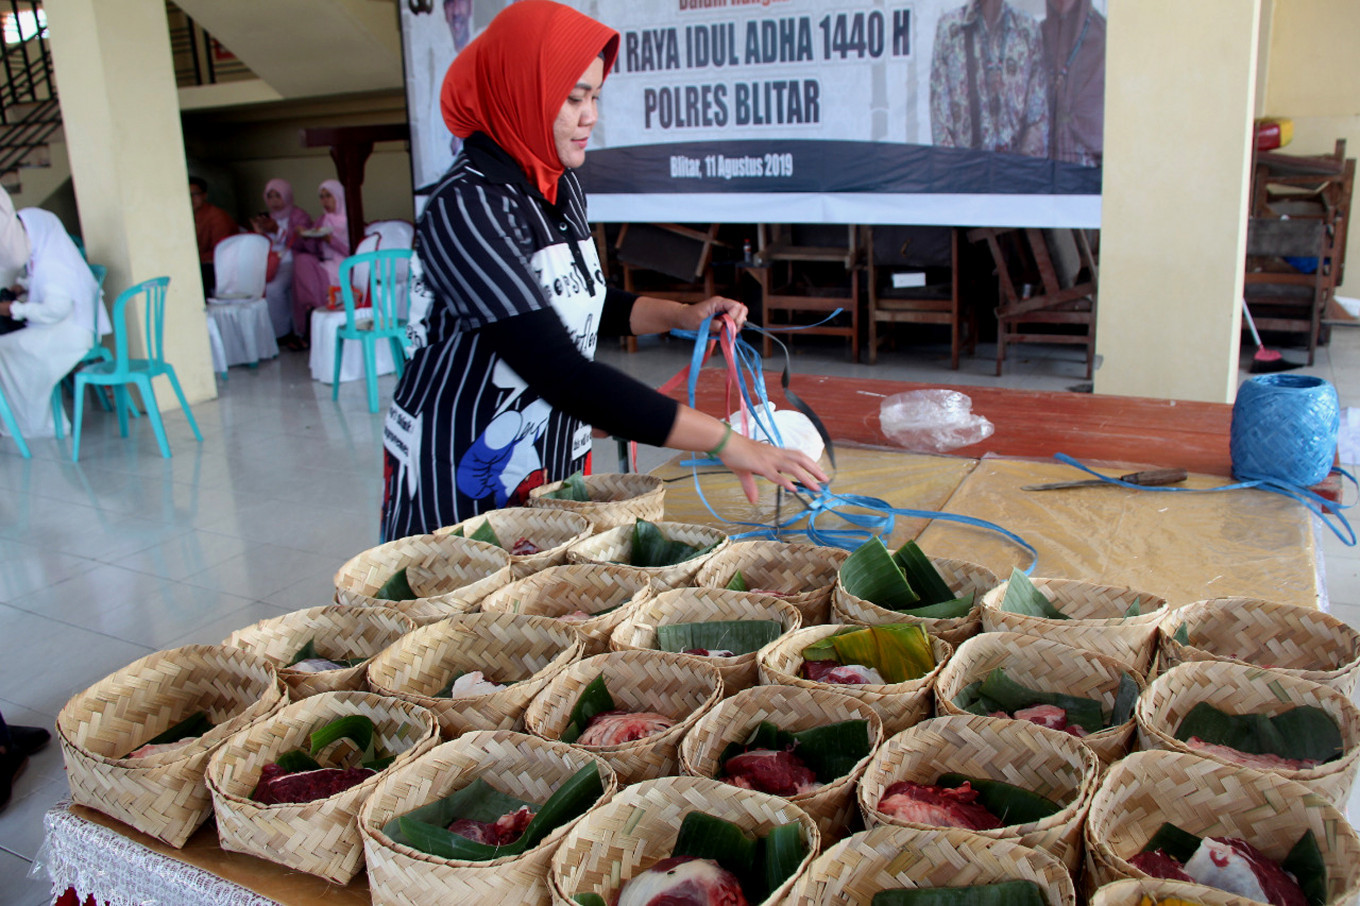 A woman prepares qurban (sacrificial) meat in besek (containers made of plaited bamboo) to be distributed to the public on Sunday at the Blitar Police headquarters in Blitar, Talun district, East Java. The Blitar Police also promoted the use of besek in distributing qurban meat to reduce plastic waste. JP/Asip Hasani